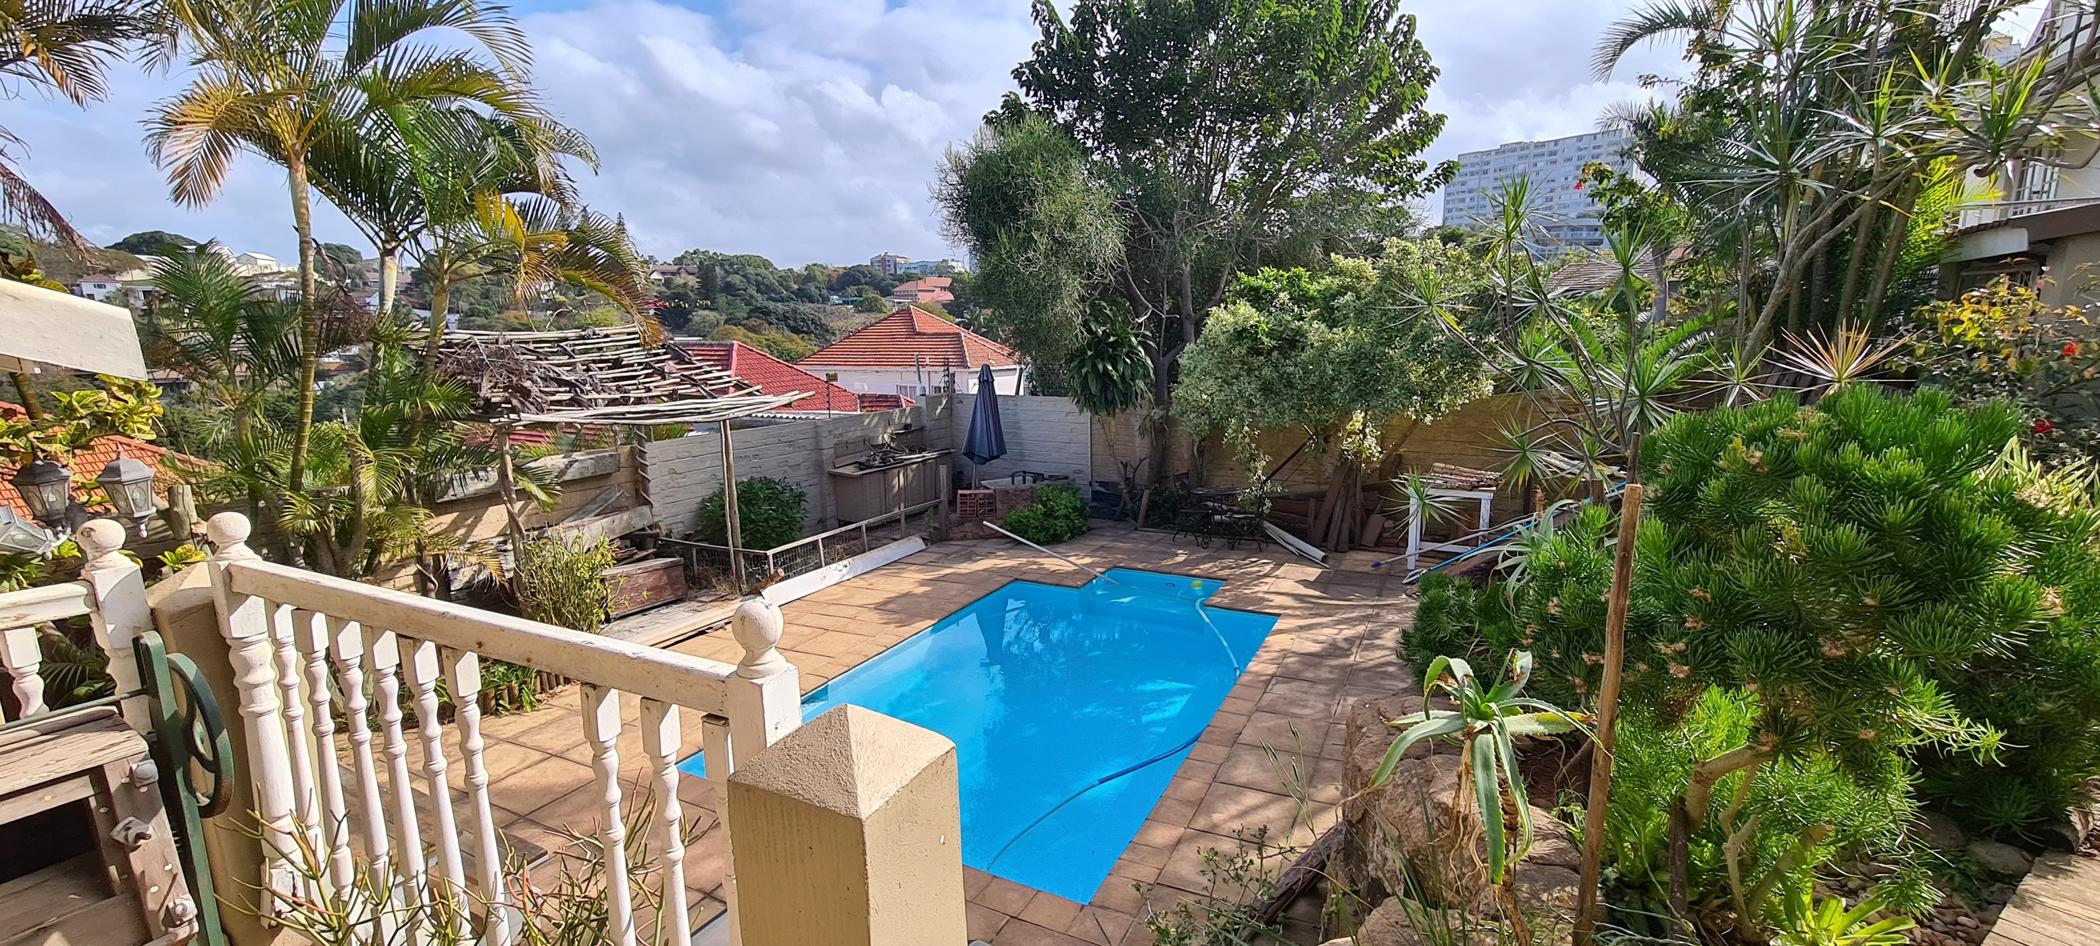 4 Bedroom Apartment To Rent | Morningside (Durban ...